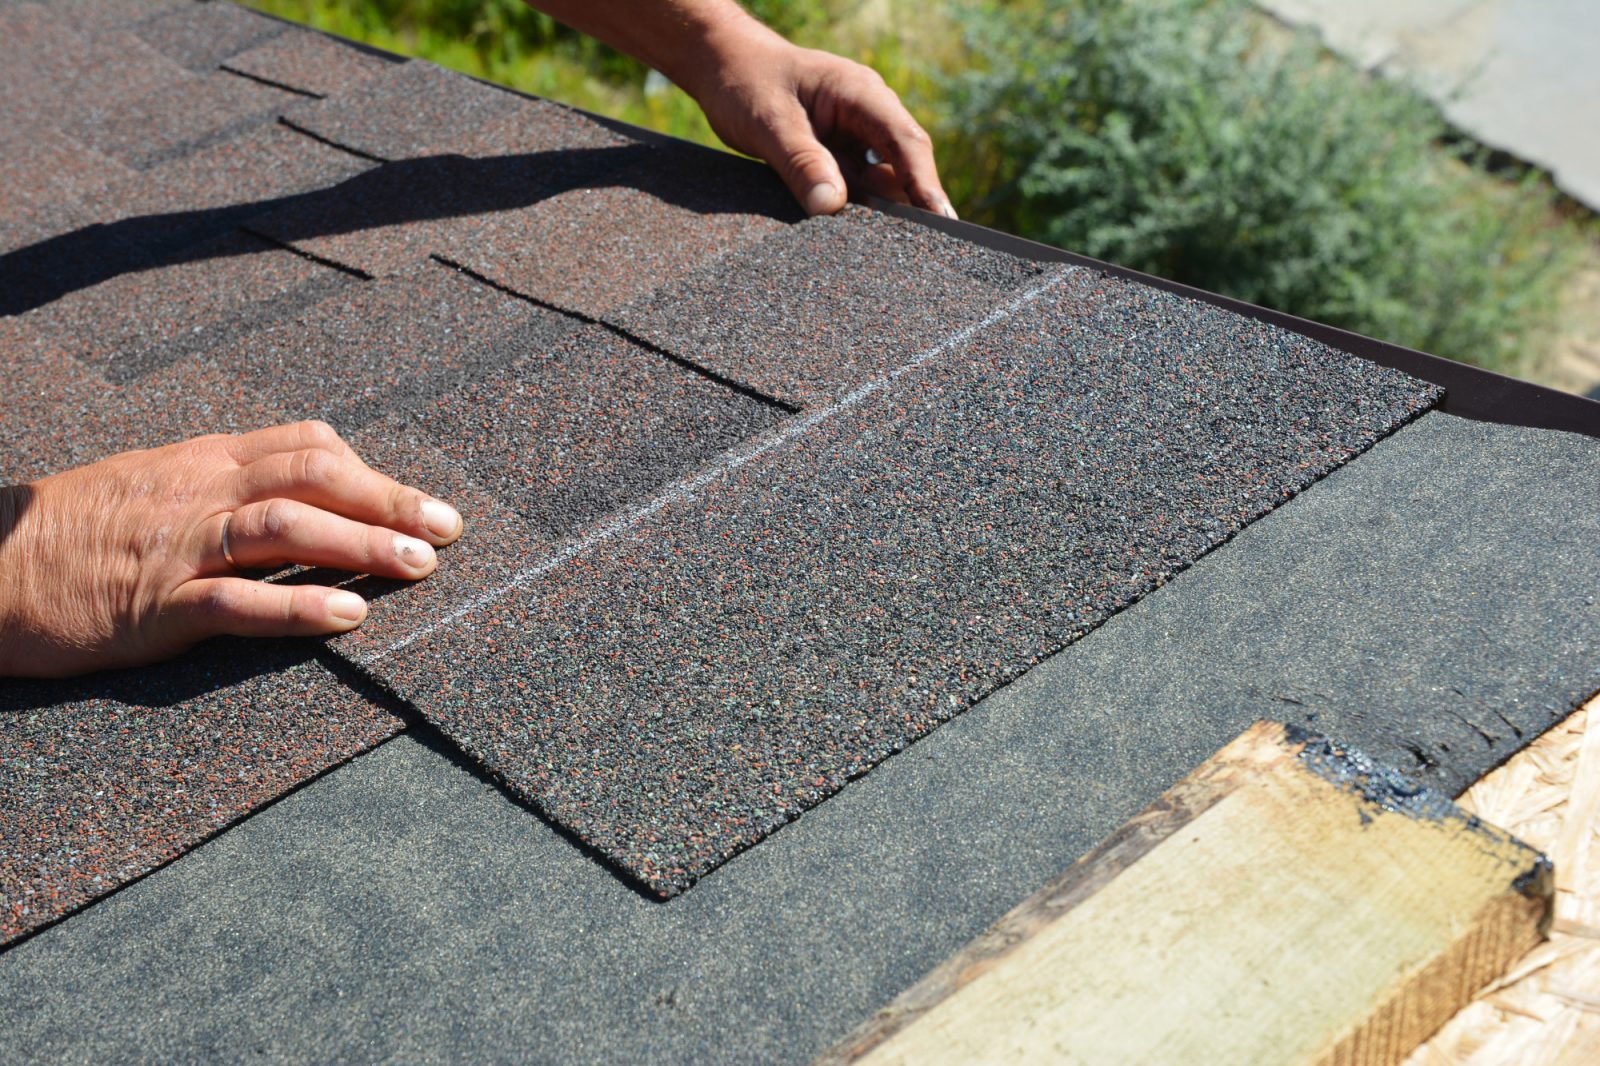 asphalt shingles installation roofer contractor installing asphalt shingles on house roofing construction